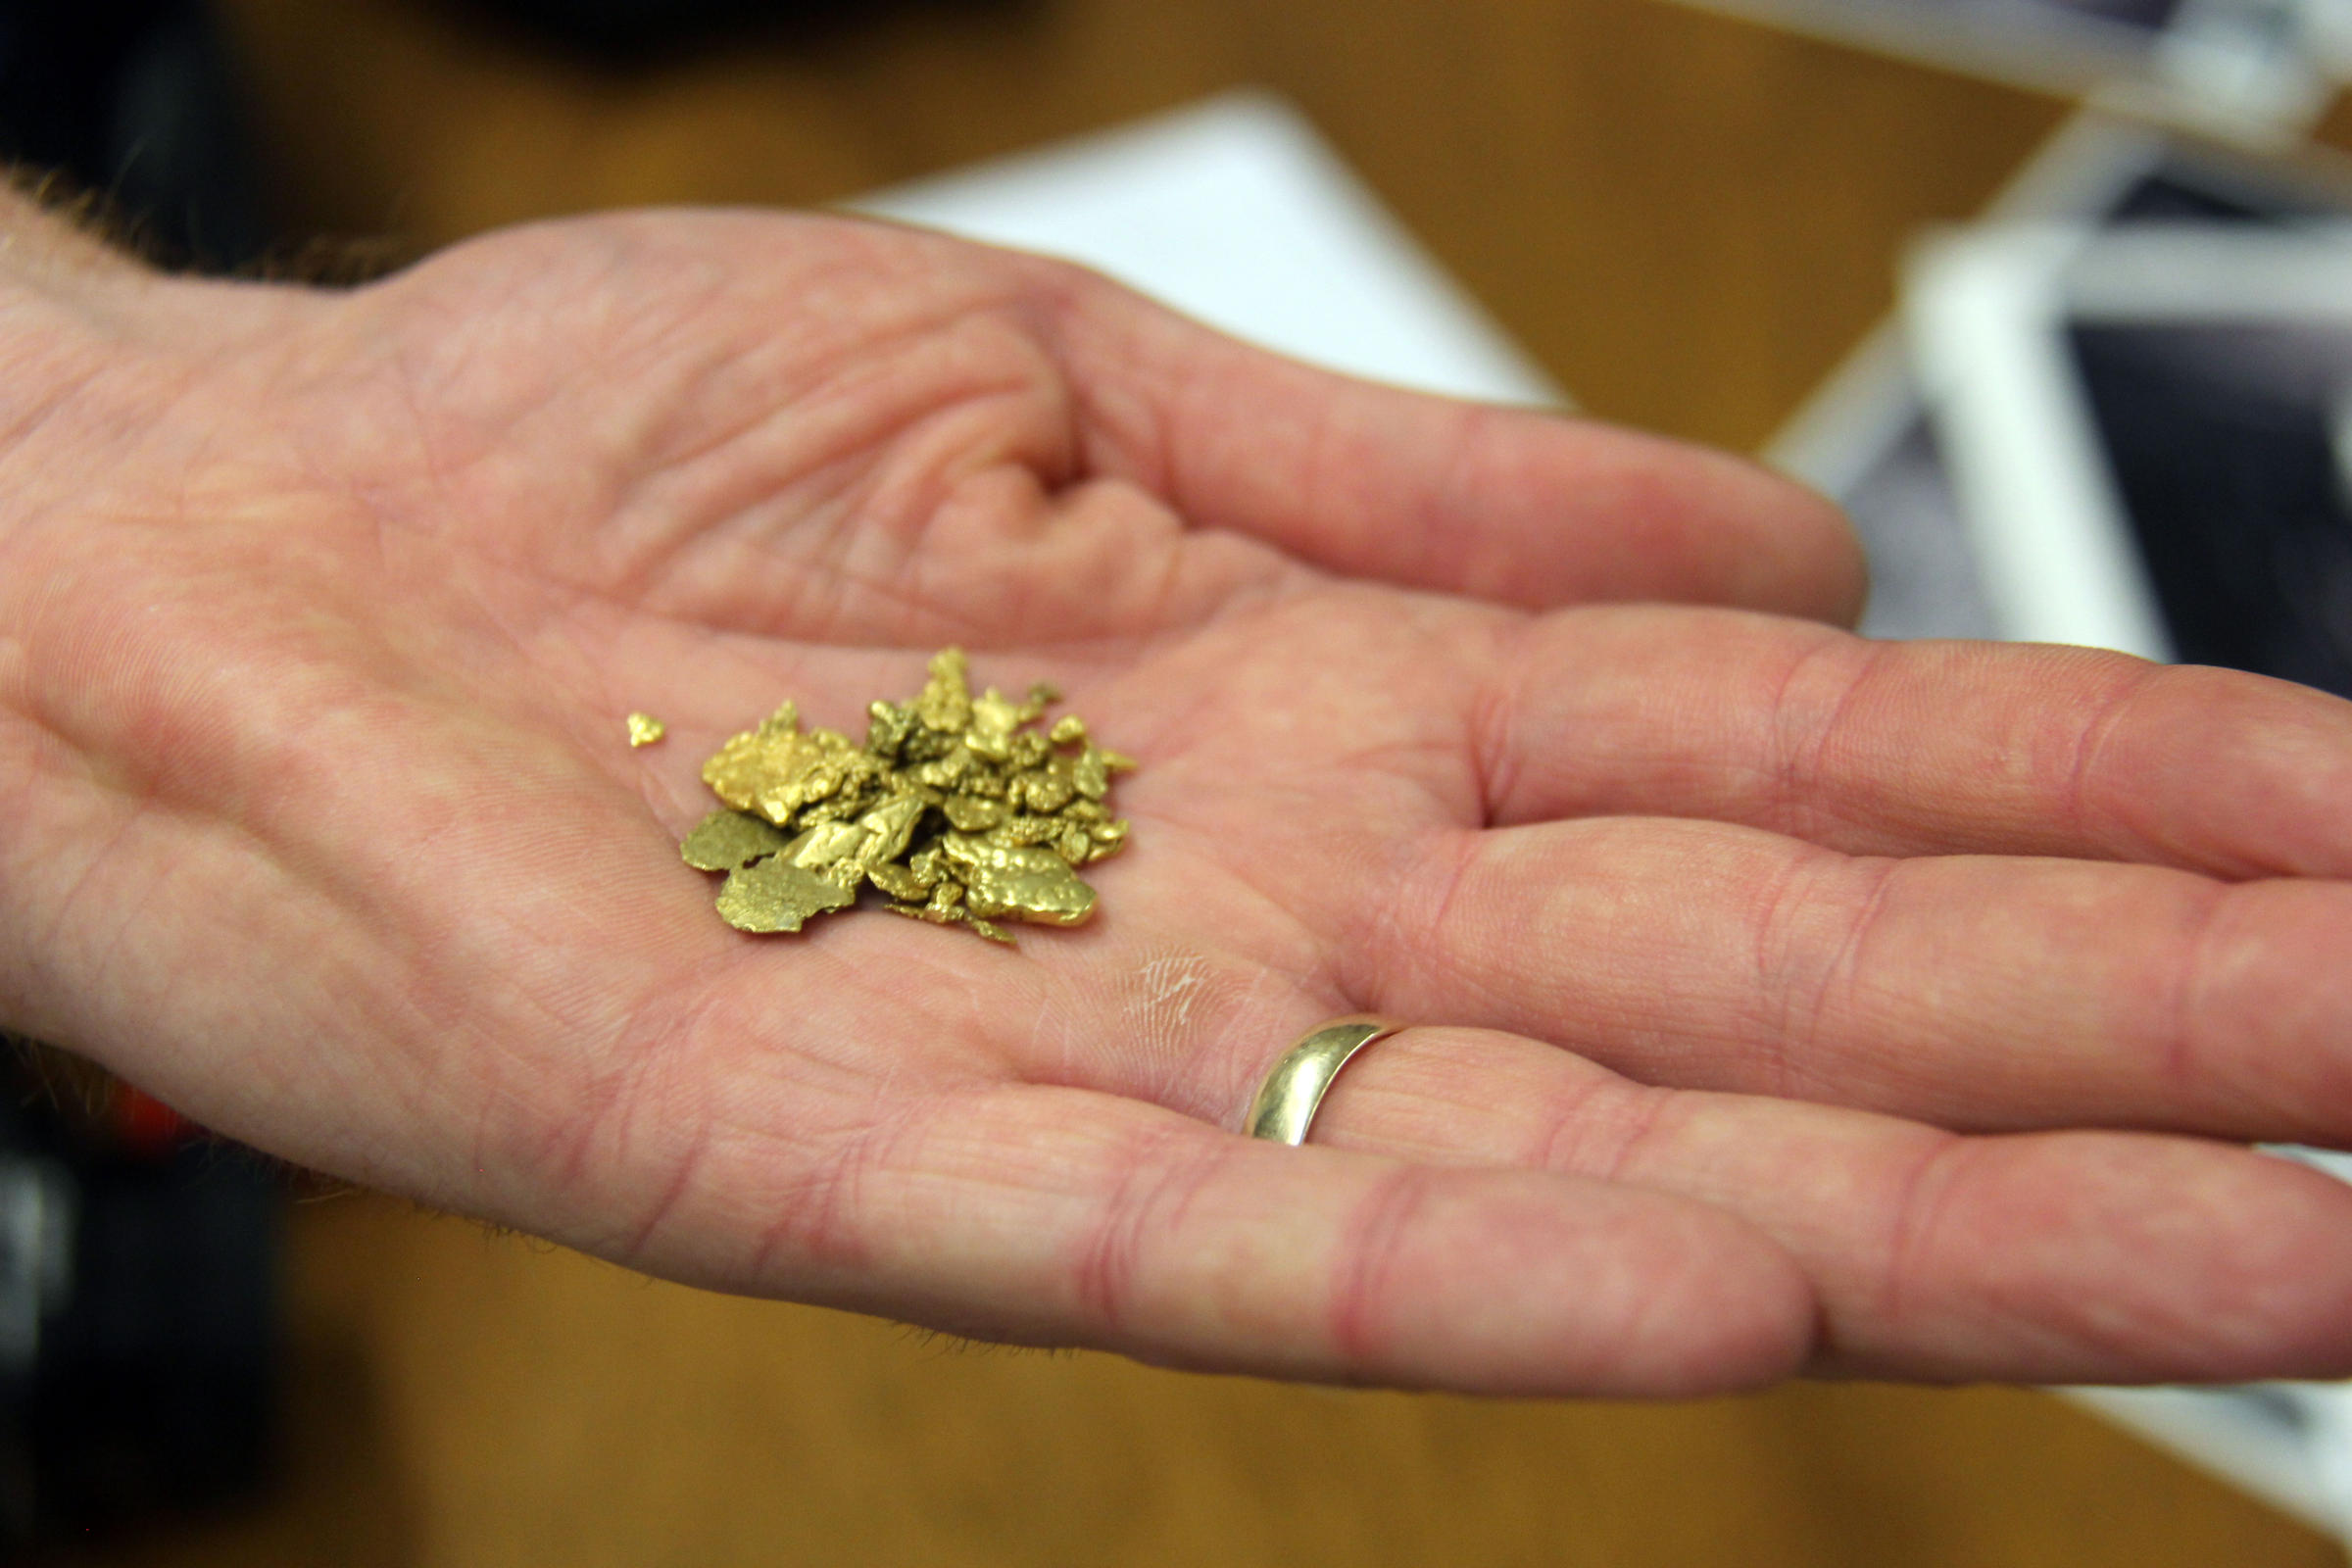 Gold in vermont yup from dynamite to panning heres how its illinski holds out some larger gold nuggets hes collected over the years in vermont brooks he says after tropical storm irene swept away large swaths of publicscrutiny Choice Image